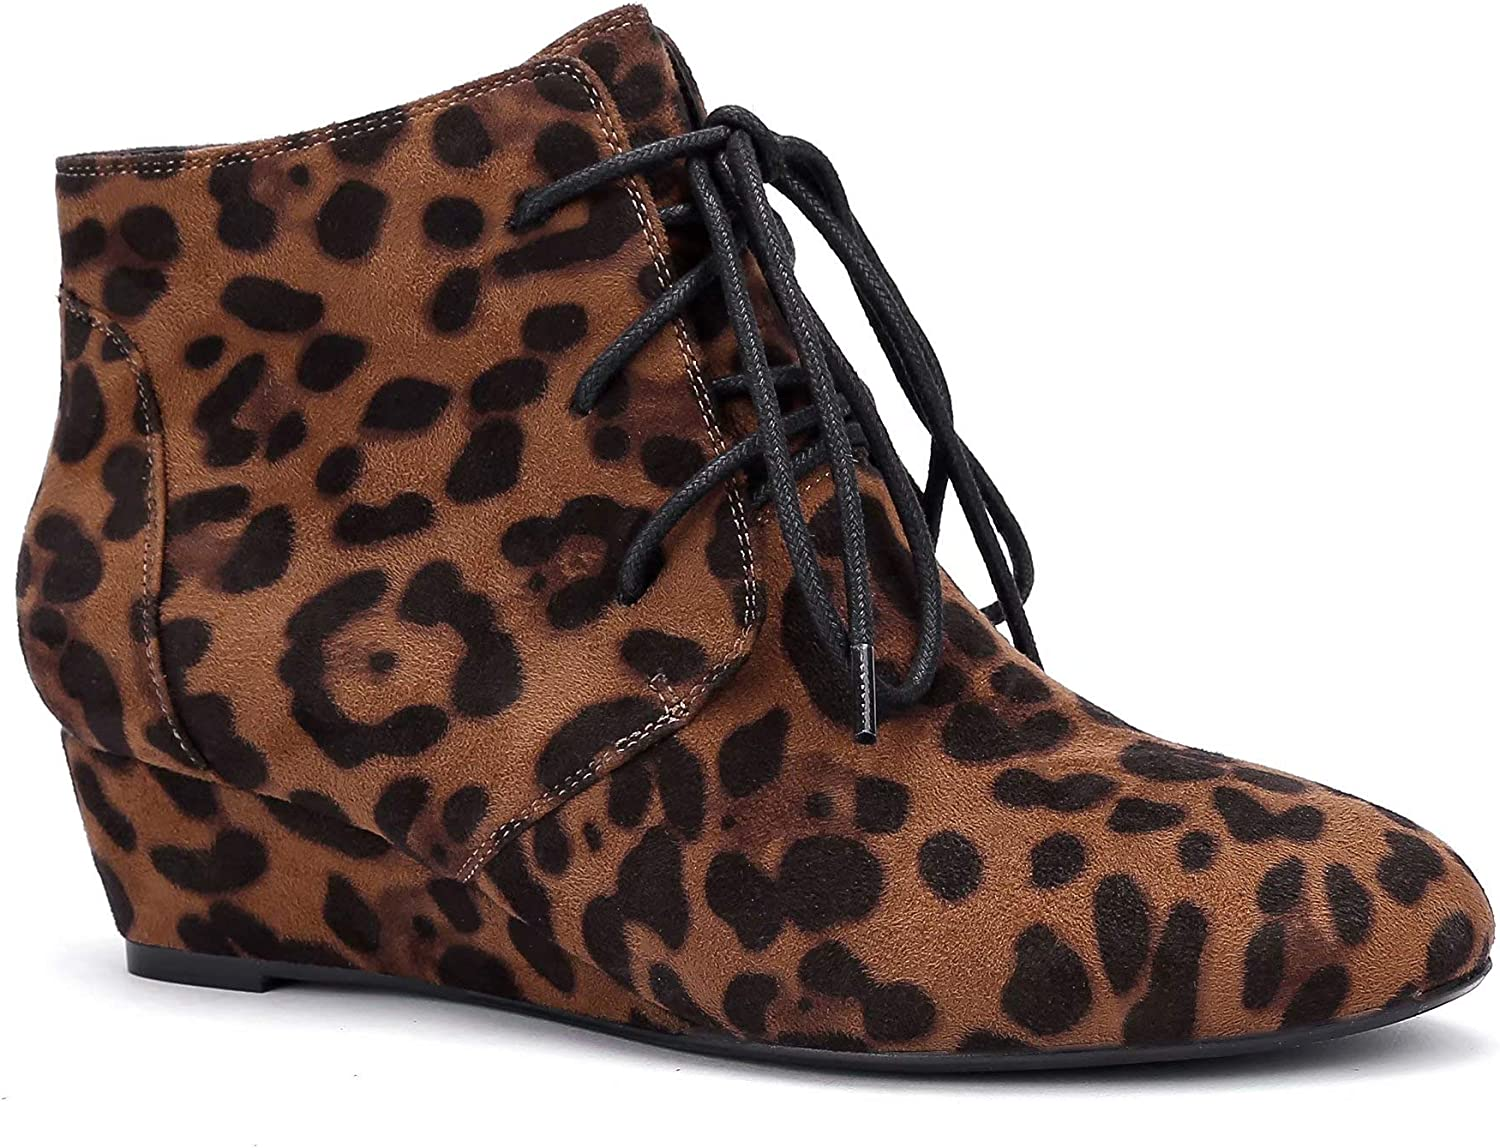 Greatonu Dallas online shopping Mall Womens Lace Up Low Wedge Ankle Heel Booties